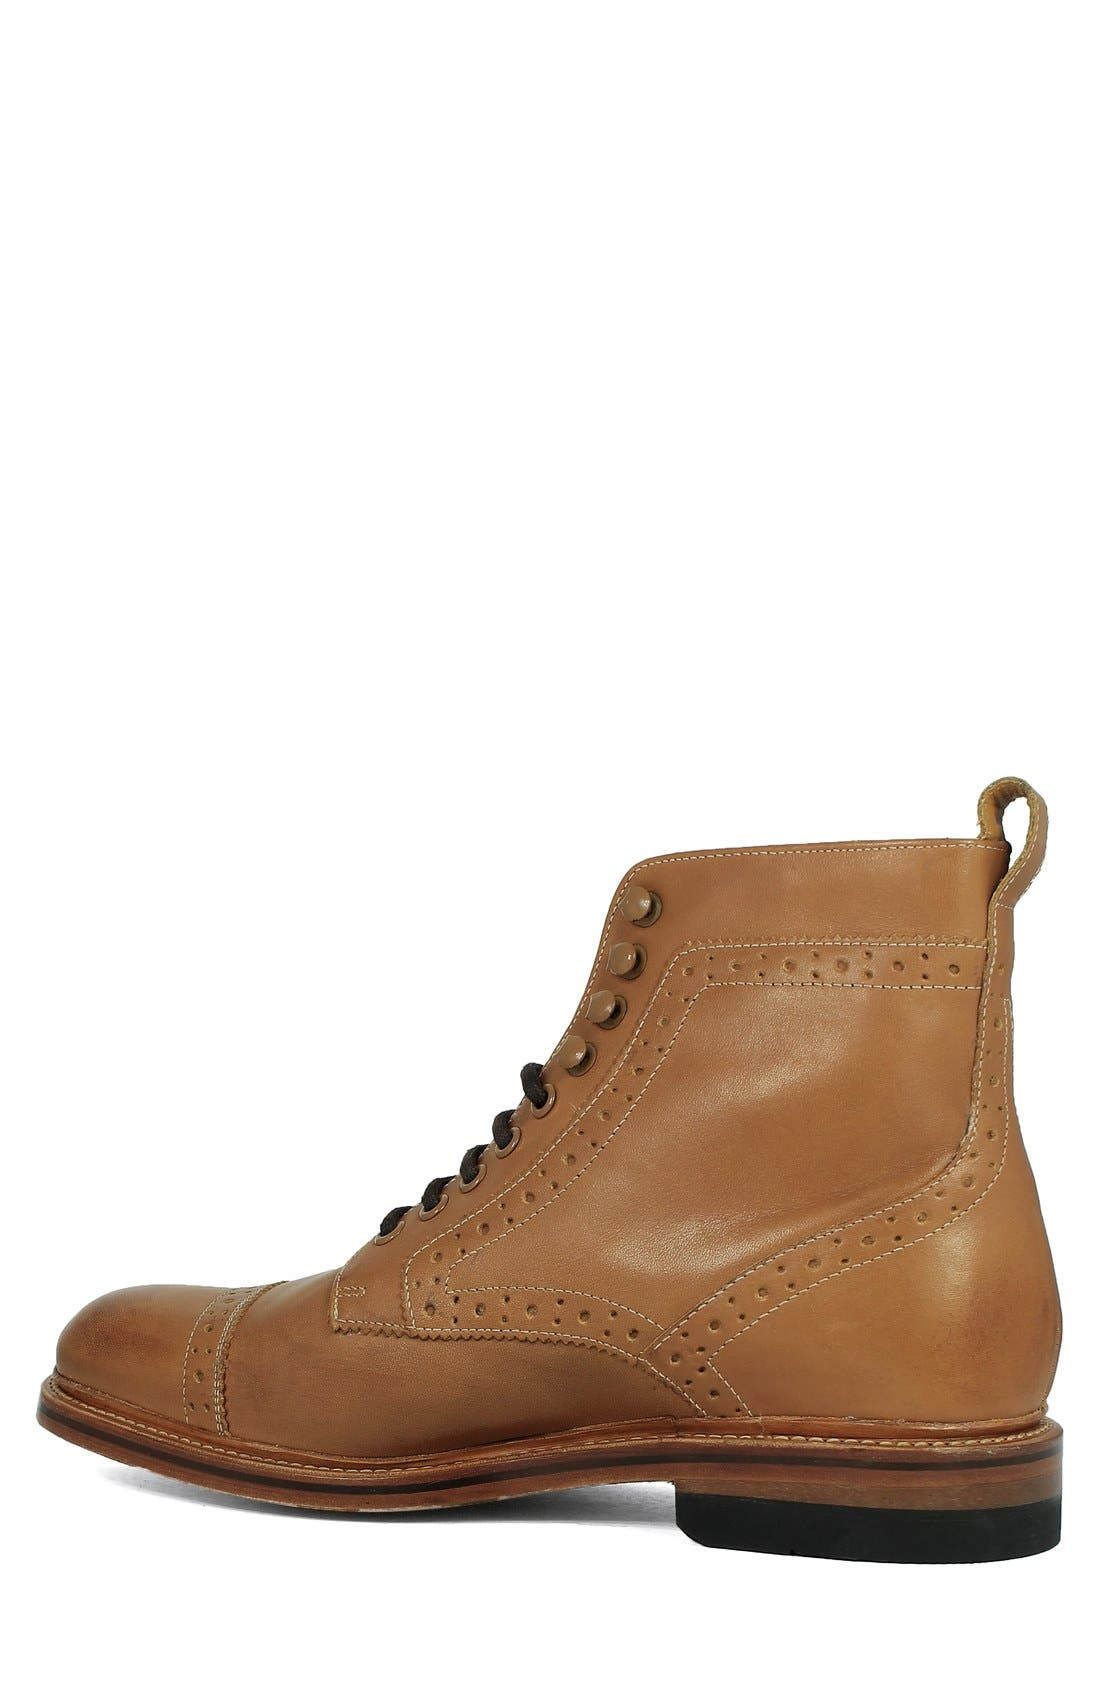 Madison II Cap Toe Boot,                             Alternate thumbnail 2, color,                             Tan Smooth